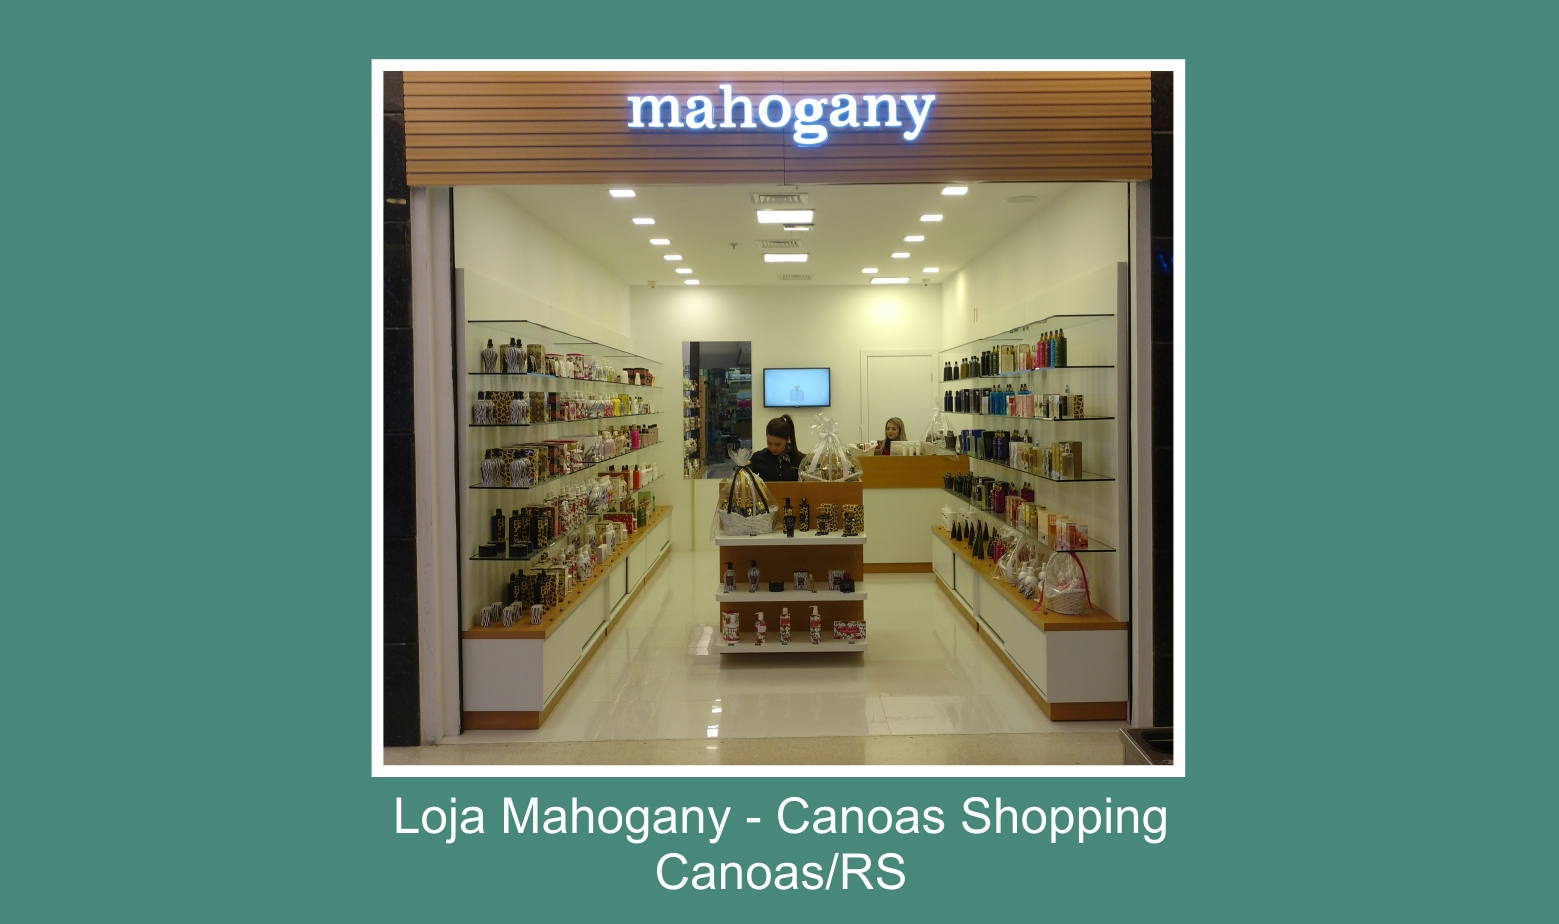 Mahogany - Canoas Shopping